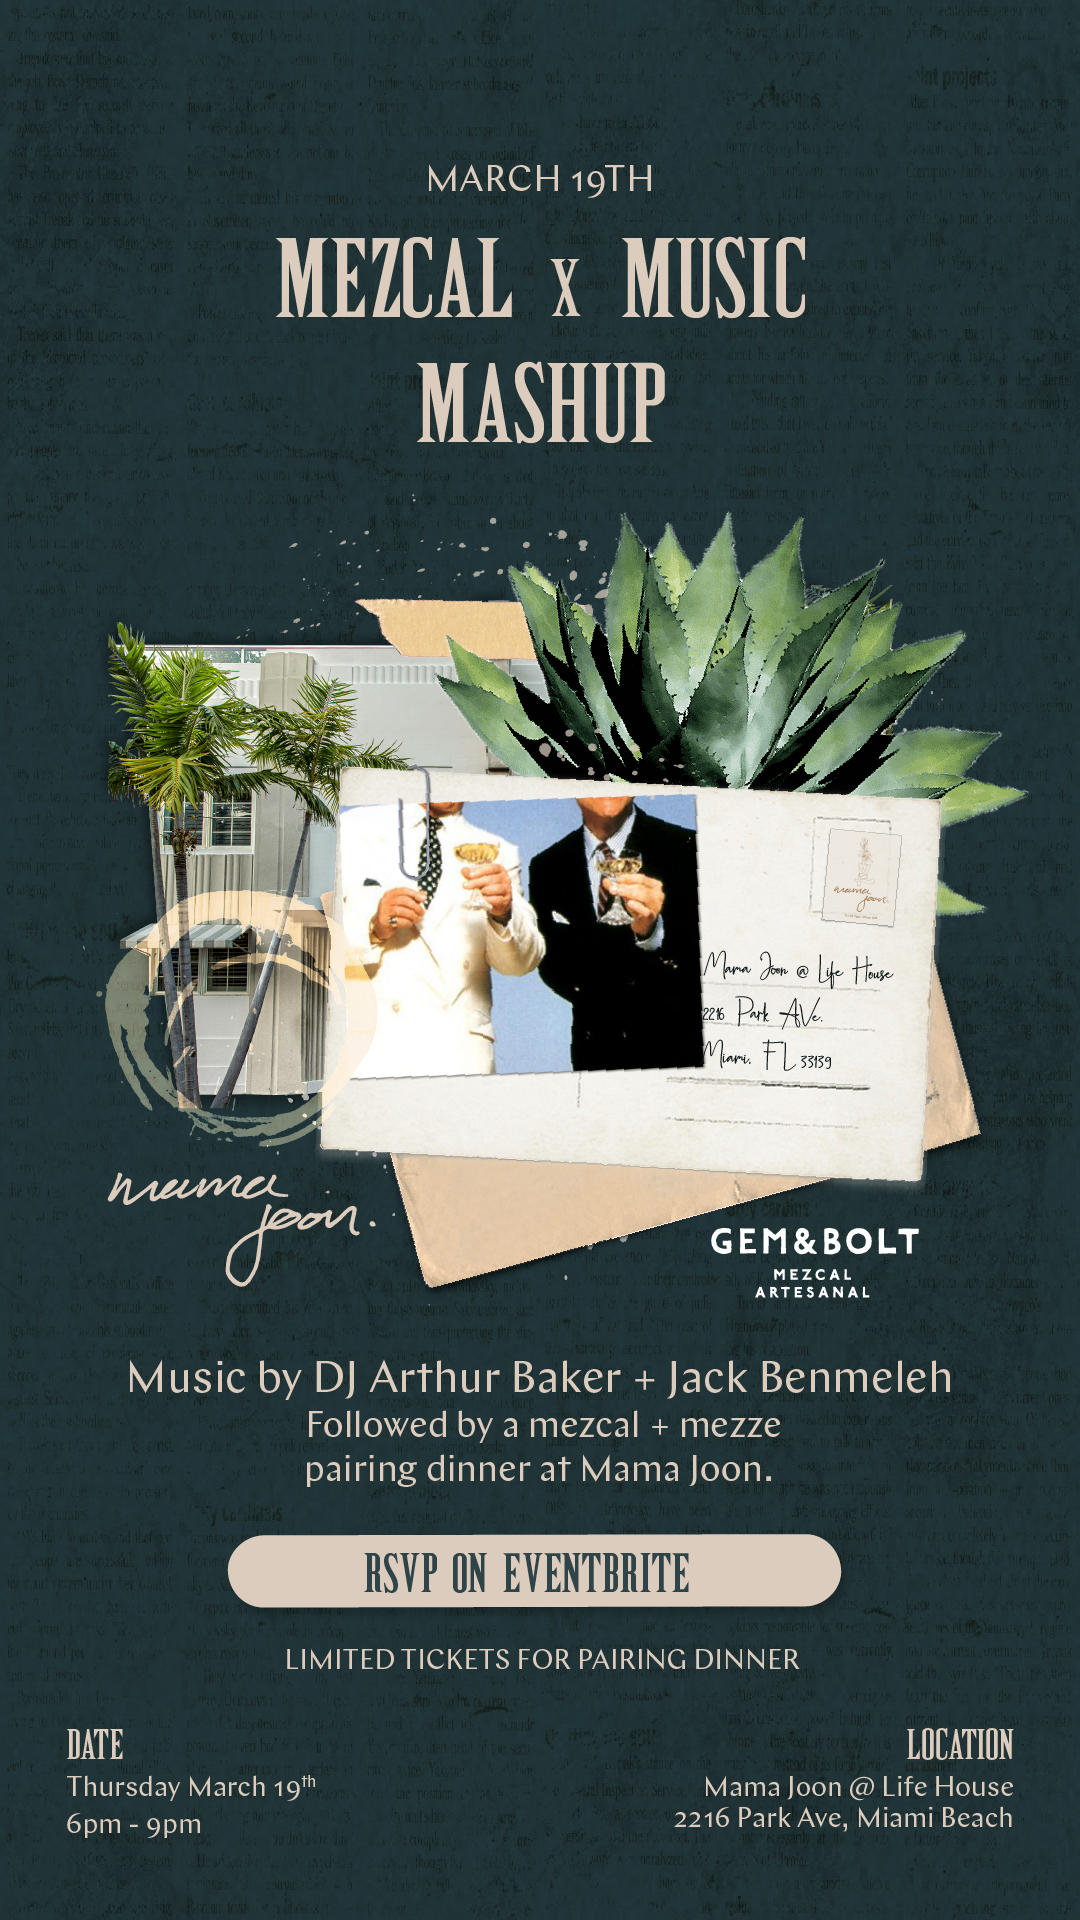 LIFE HOUSE, COLLINS PARK PRESENTS MEZCAL X MUSIC MASHUP ON MARCH 19